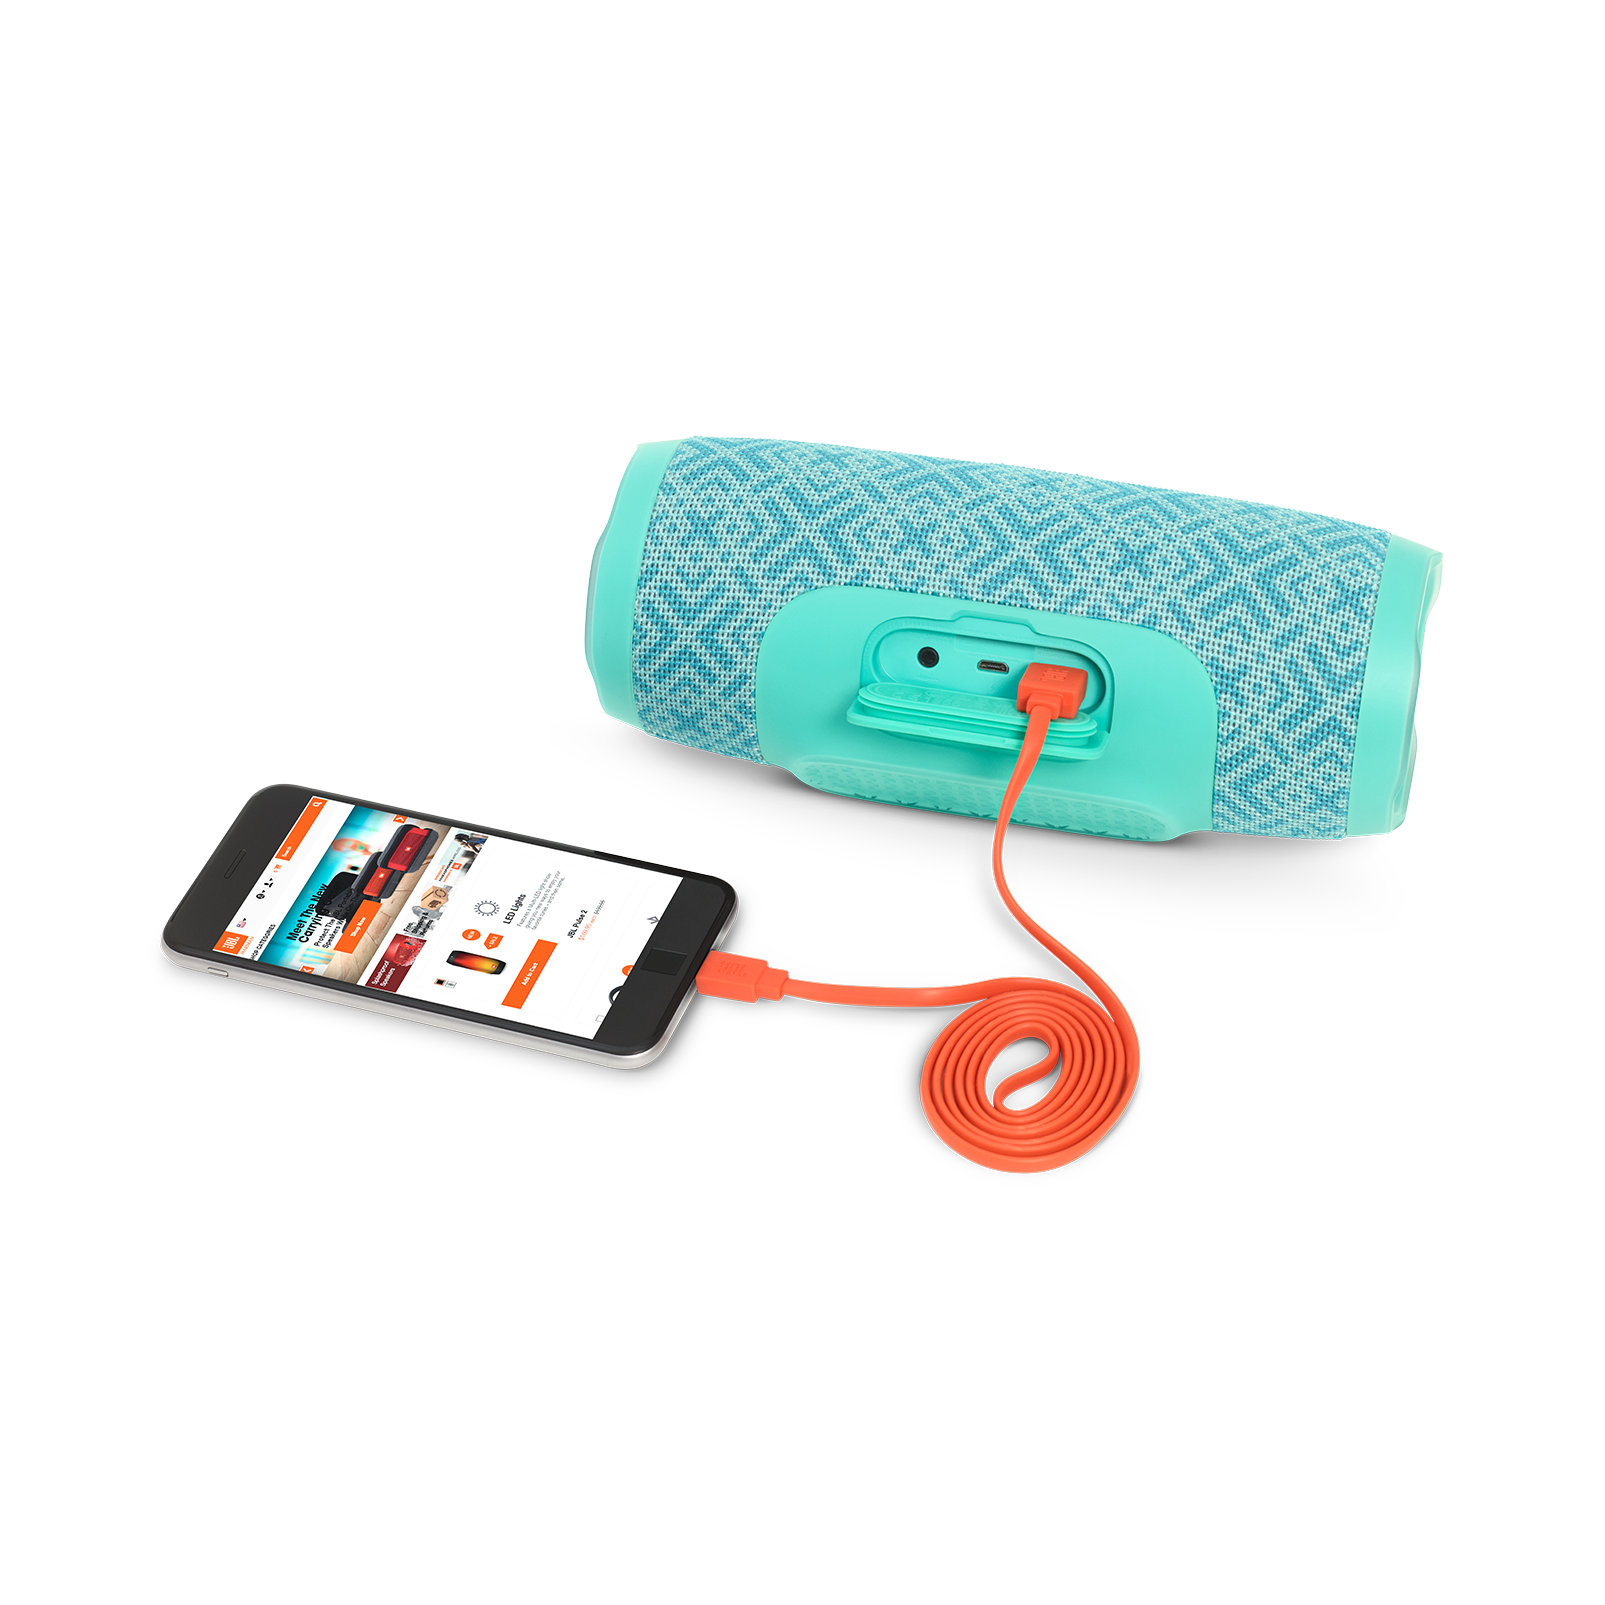 JBL Charge 3 Special Edition - Mosaic - Full-featured waterproof portable speaker with high-capacity battery to charge your devices - Detailshot 1